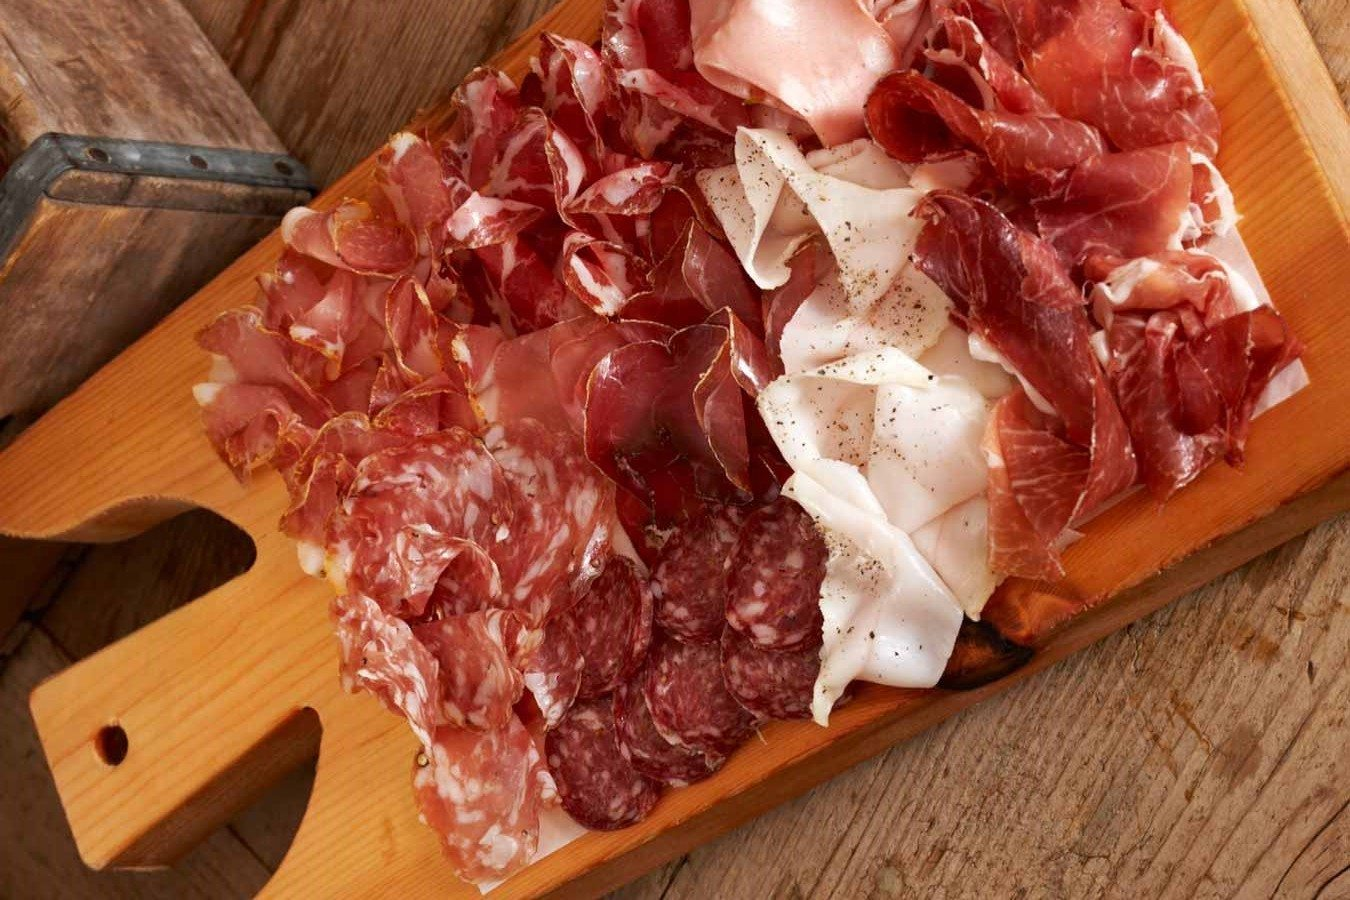 48 Moth House Curef Prosciutto Hand sliced